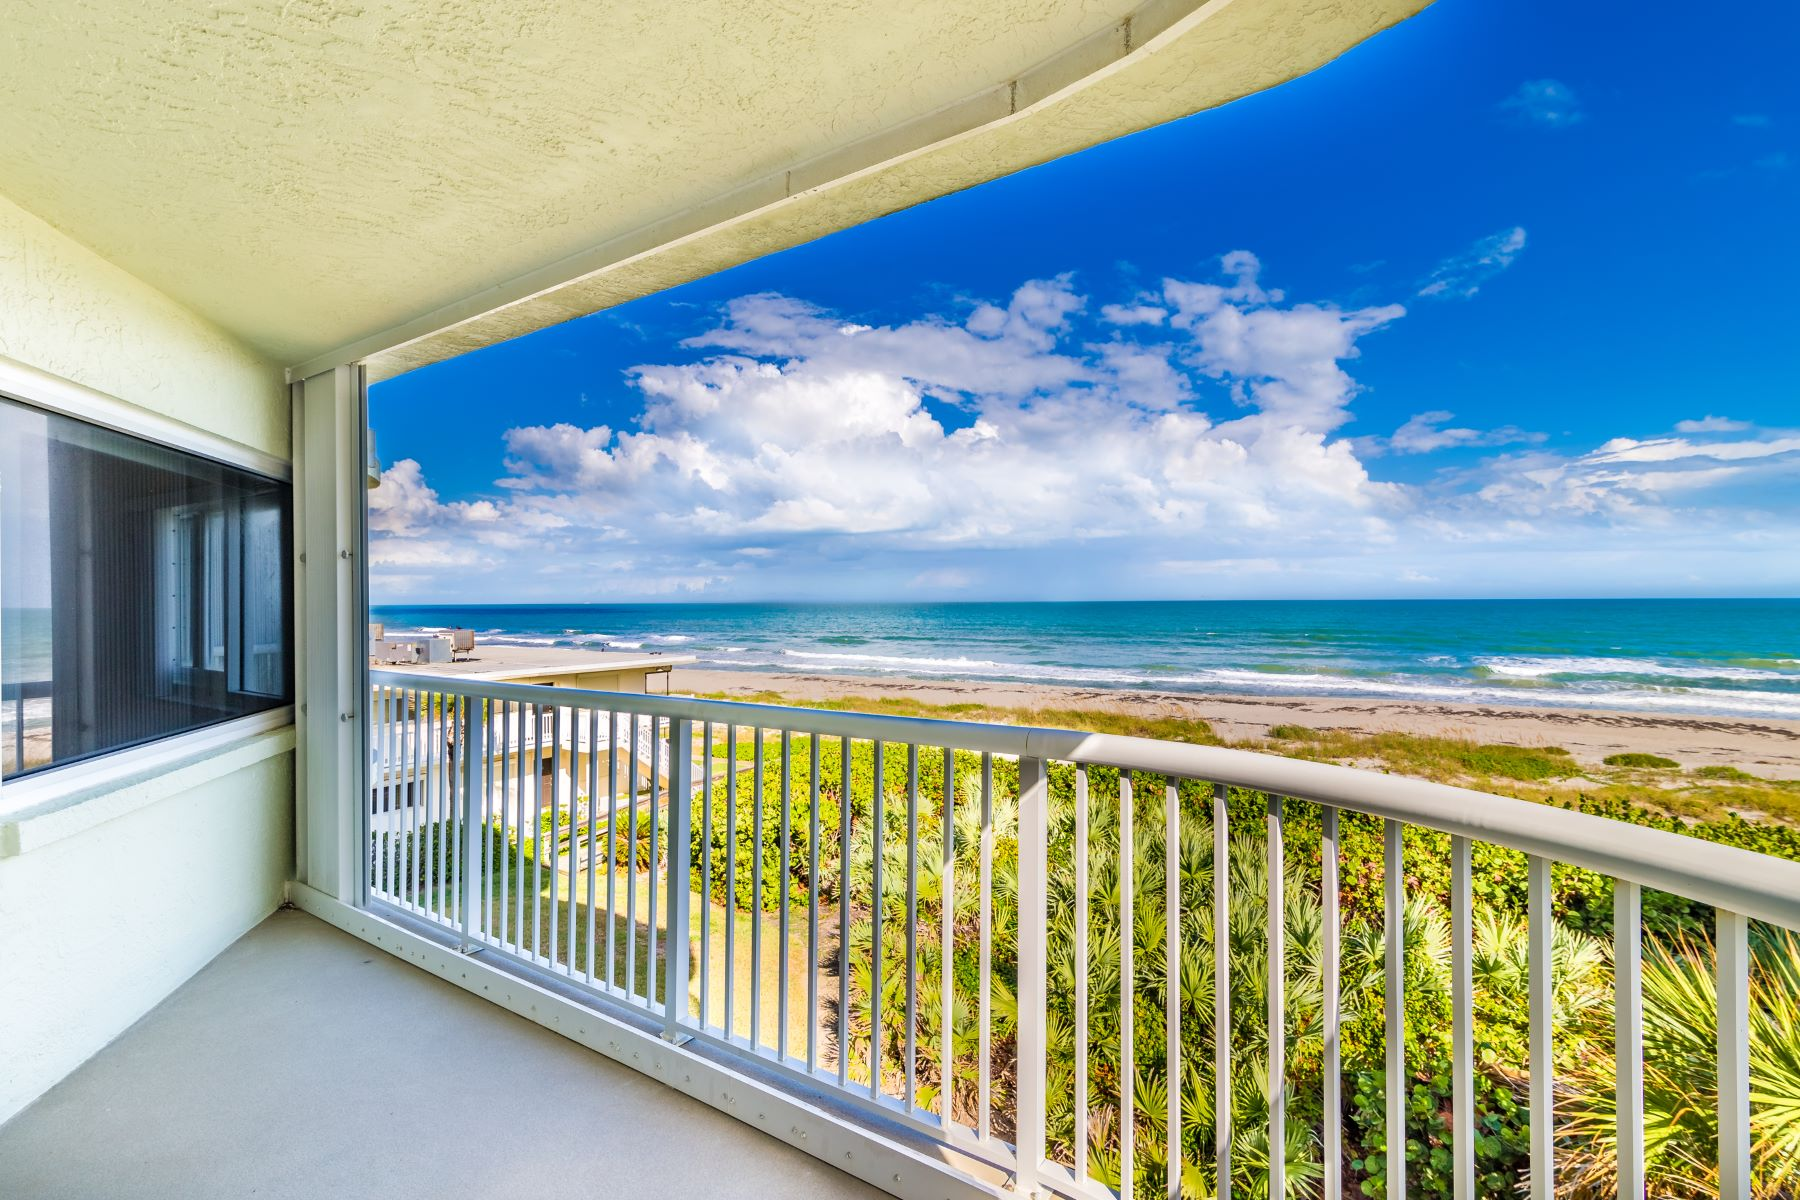 Condominium for Sale at Casa Playa Condo 3031 South Atlantic Avenue #303 Cocoa Beach, Florida 32931 United States